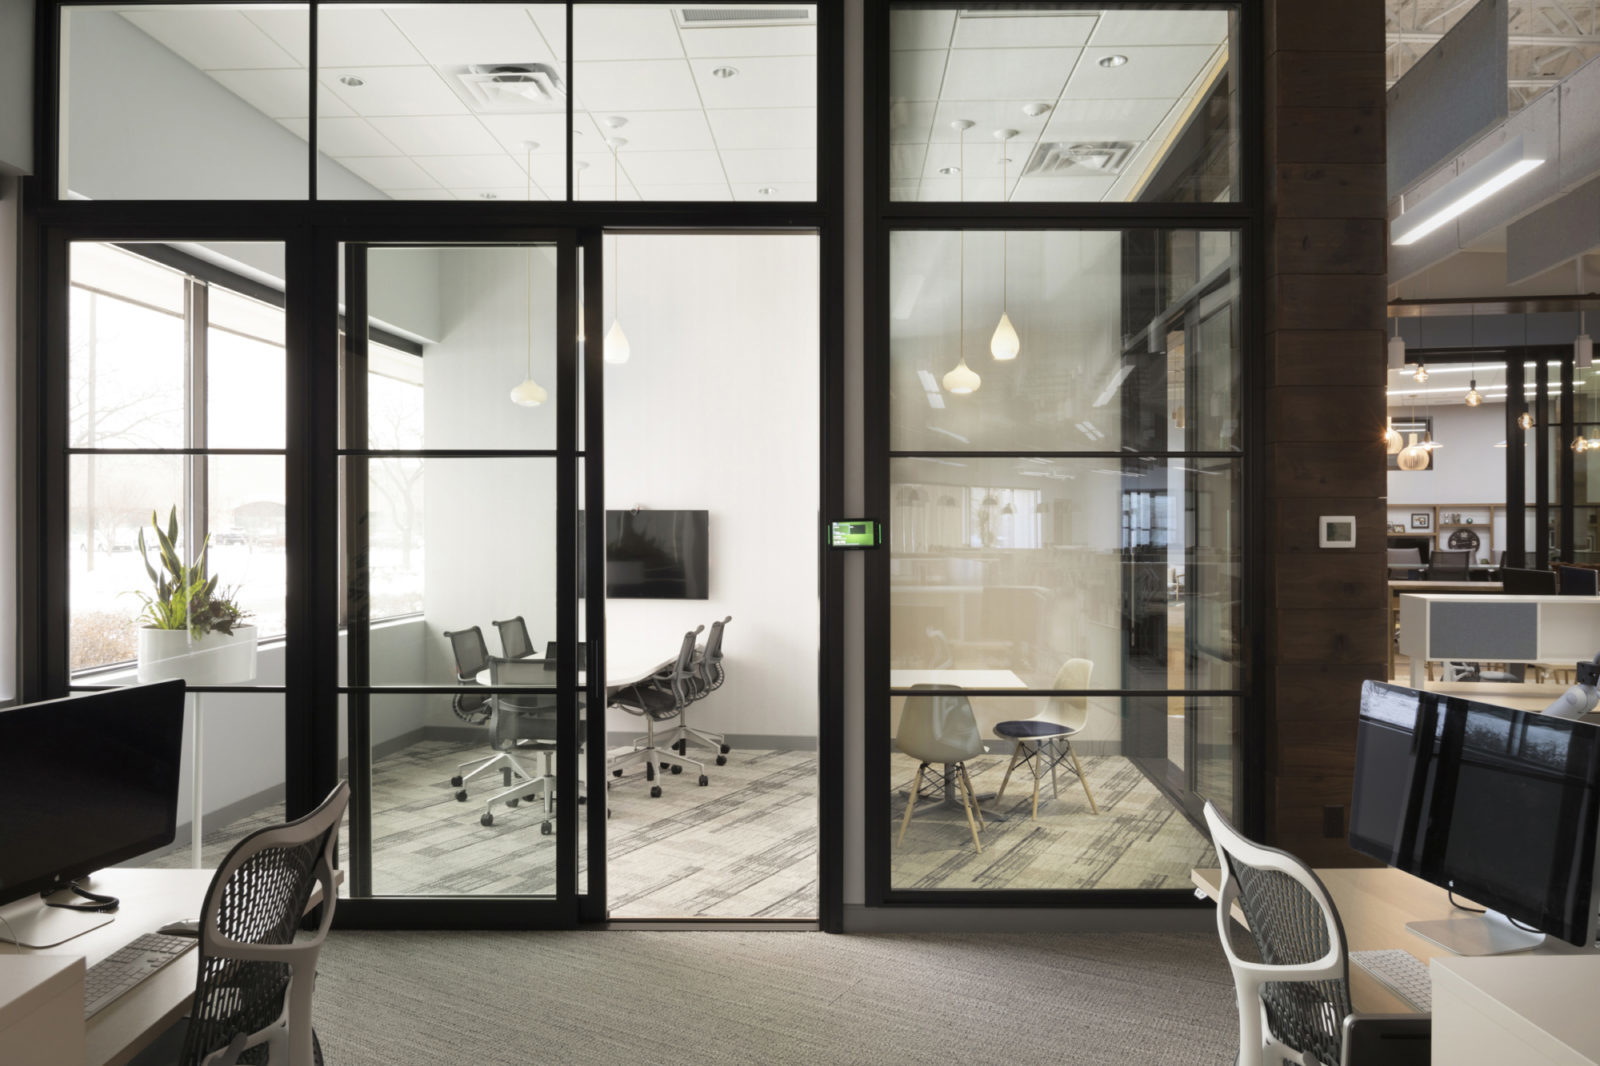 Side by side conference rooms with video conference technology